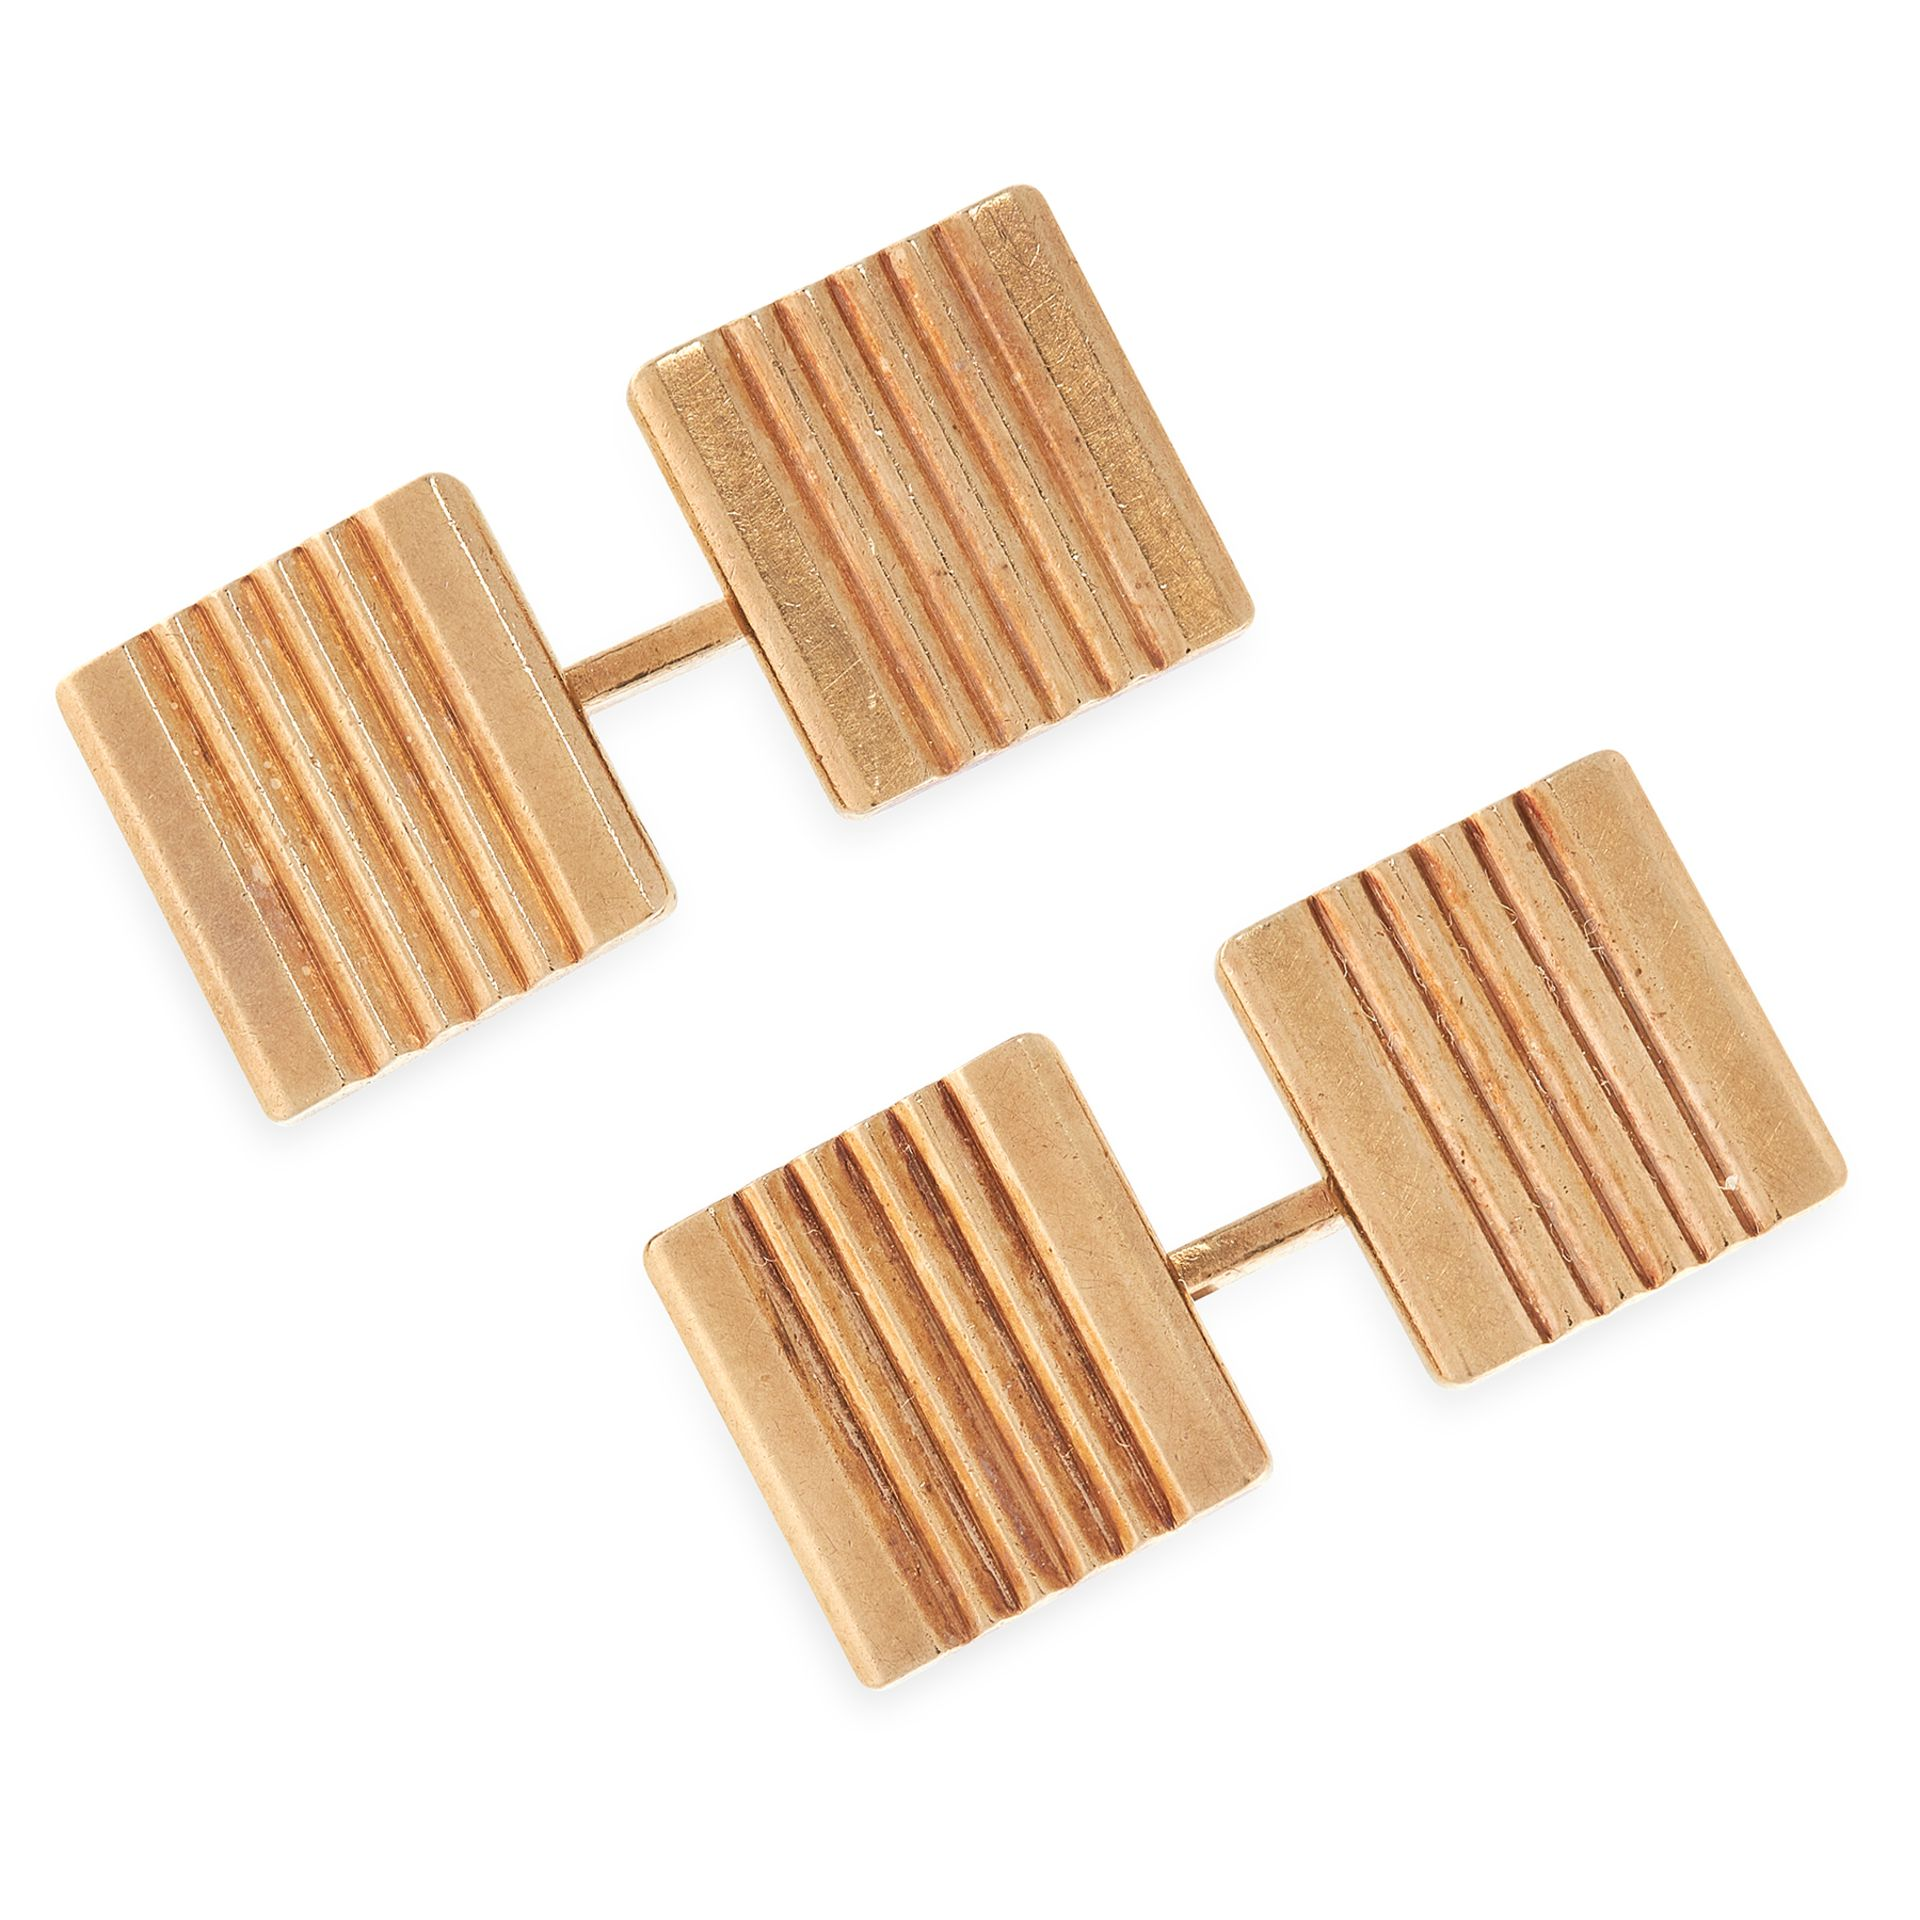 A PAIR OF VINTAGE CUFFLINKS, CARTIER in yellow gold, each formed of two square faces with reeded